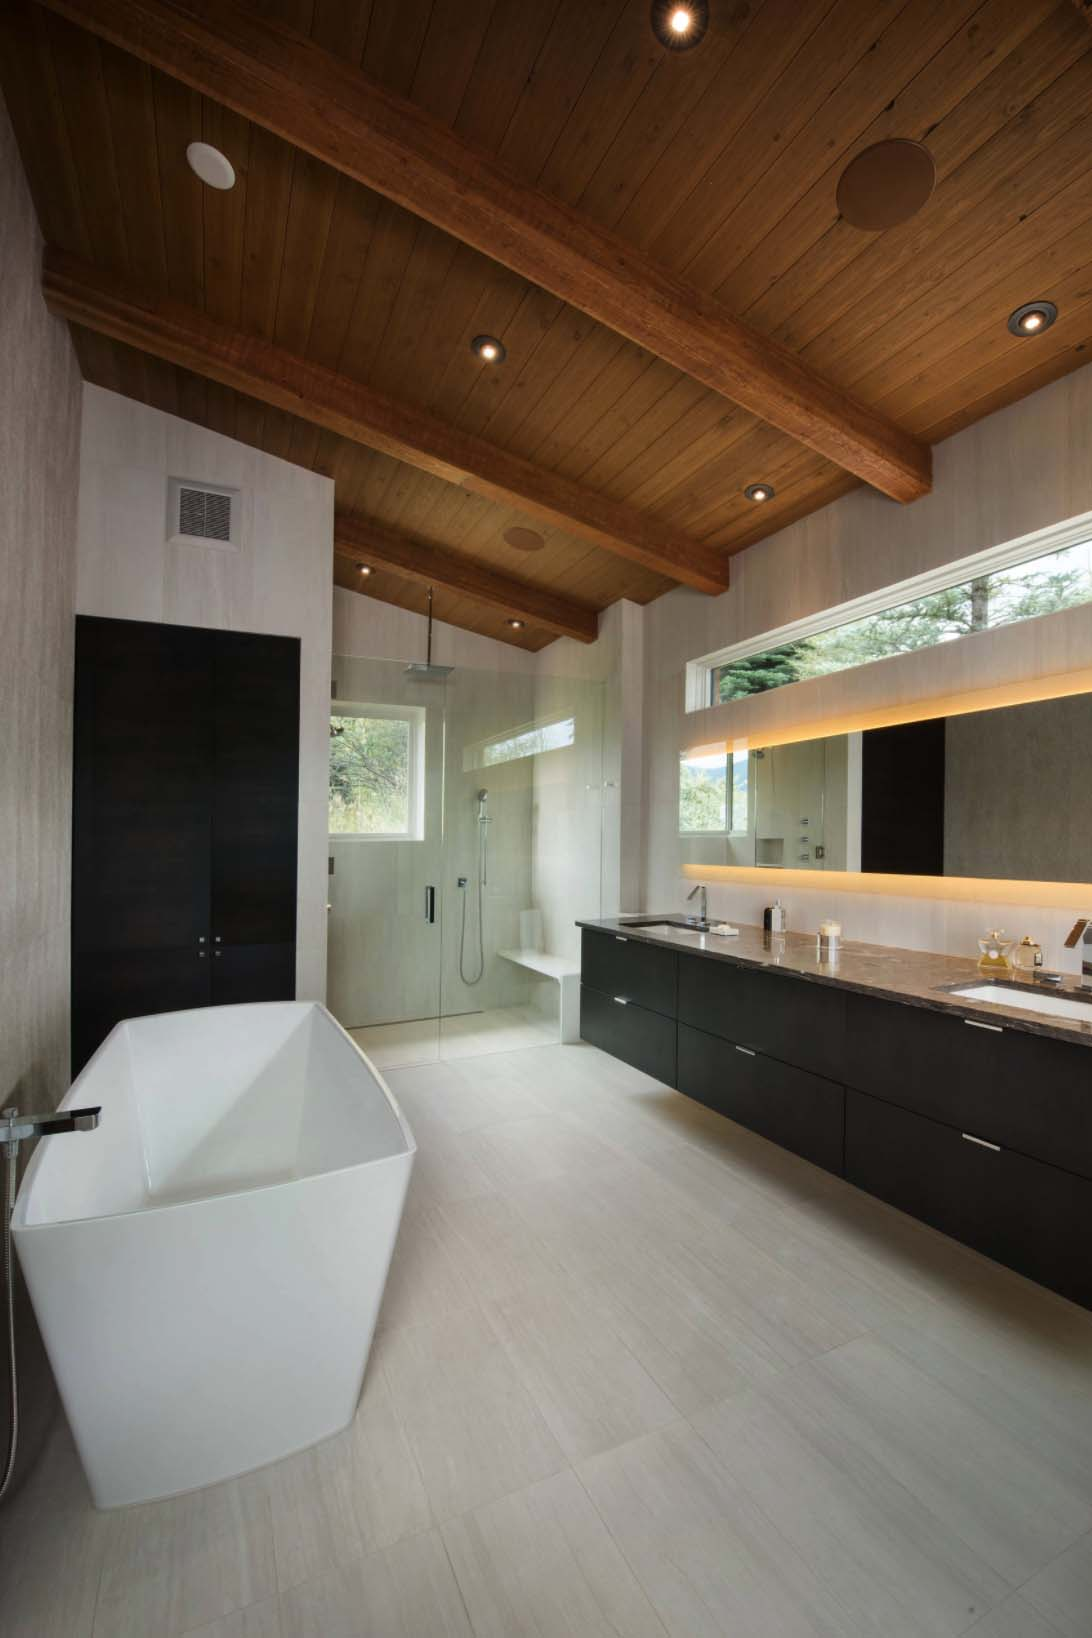 Contemporary Mountain Home Renovation-Berglund Architects-12-1 Kindesign